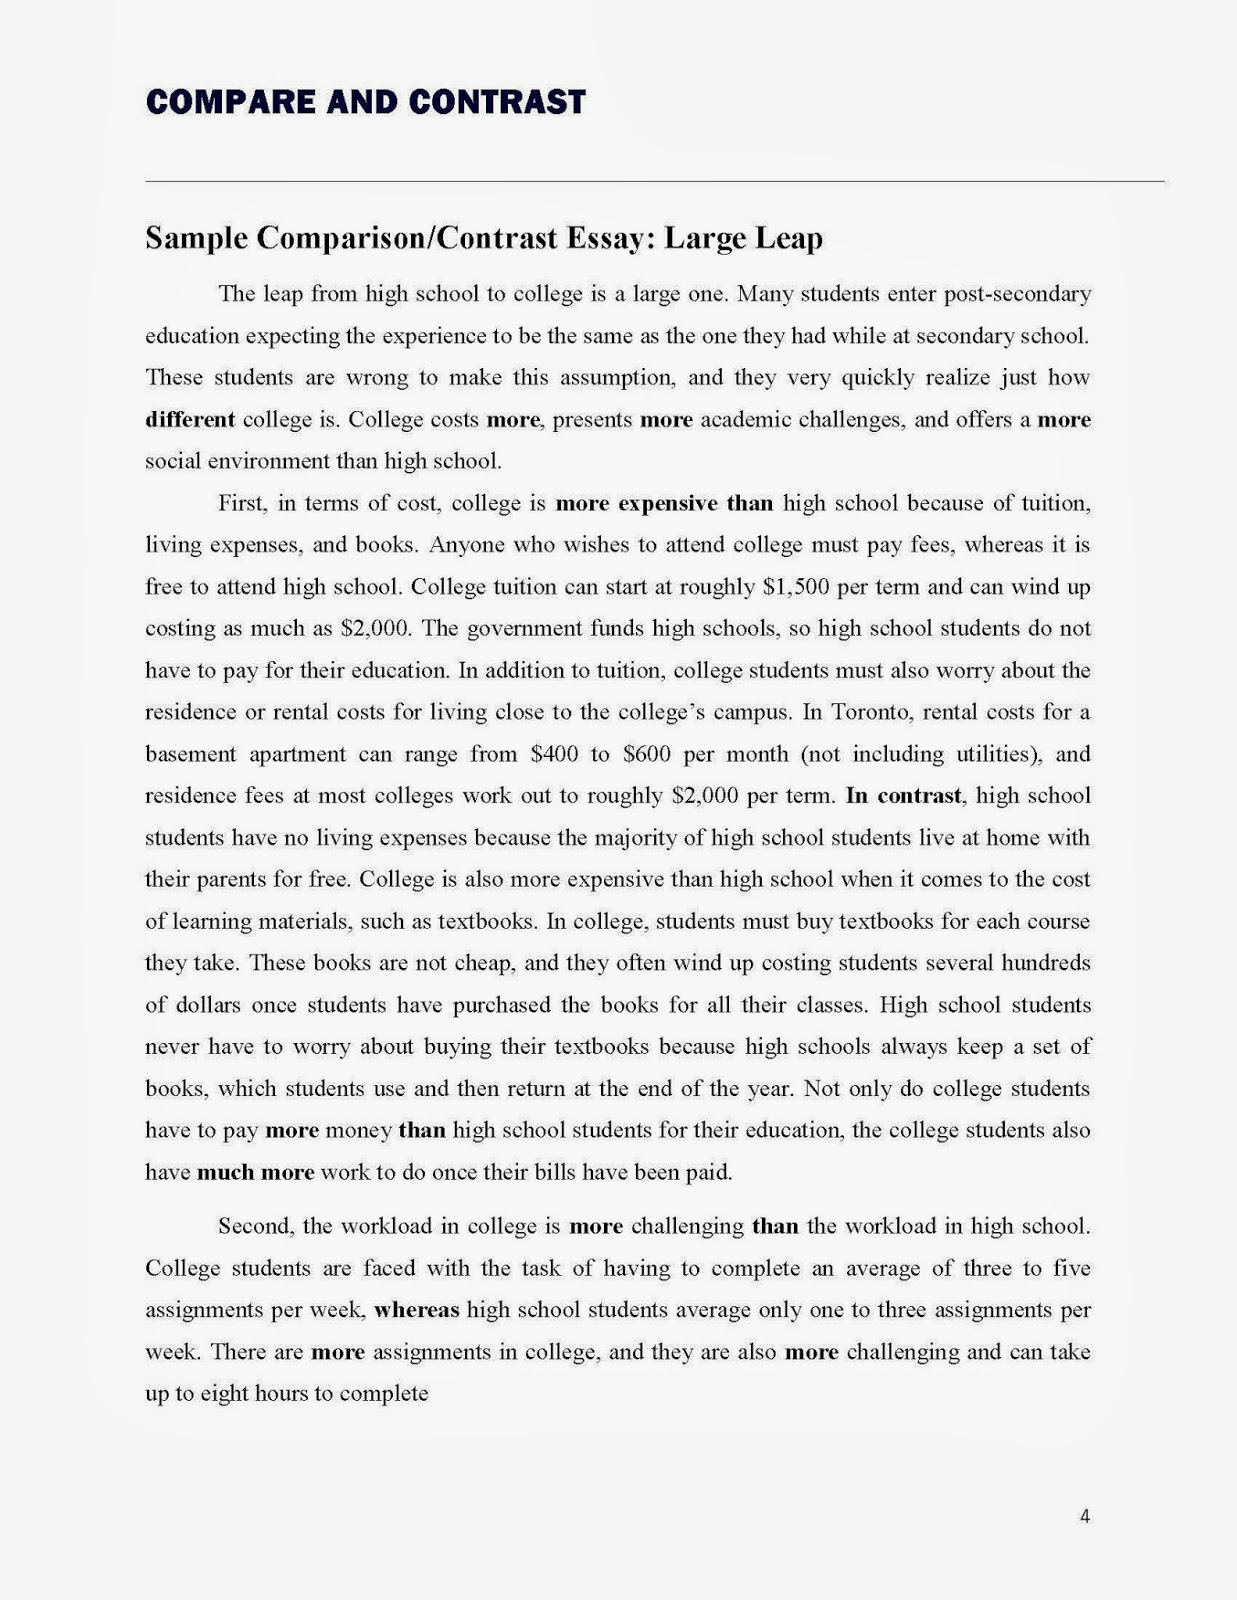 Controversial Issue Essay Compare And Contrast Essays Examples Free  Nonverbal Communication Essays also Custom Essay Service Compare And Contrast Essays Examples Free   Compare And Contrast  Essay Helper Online